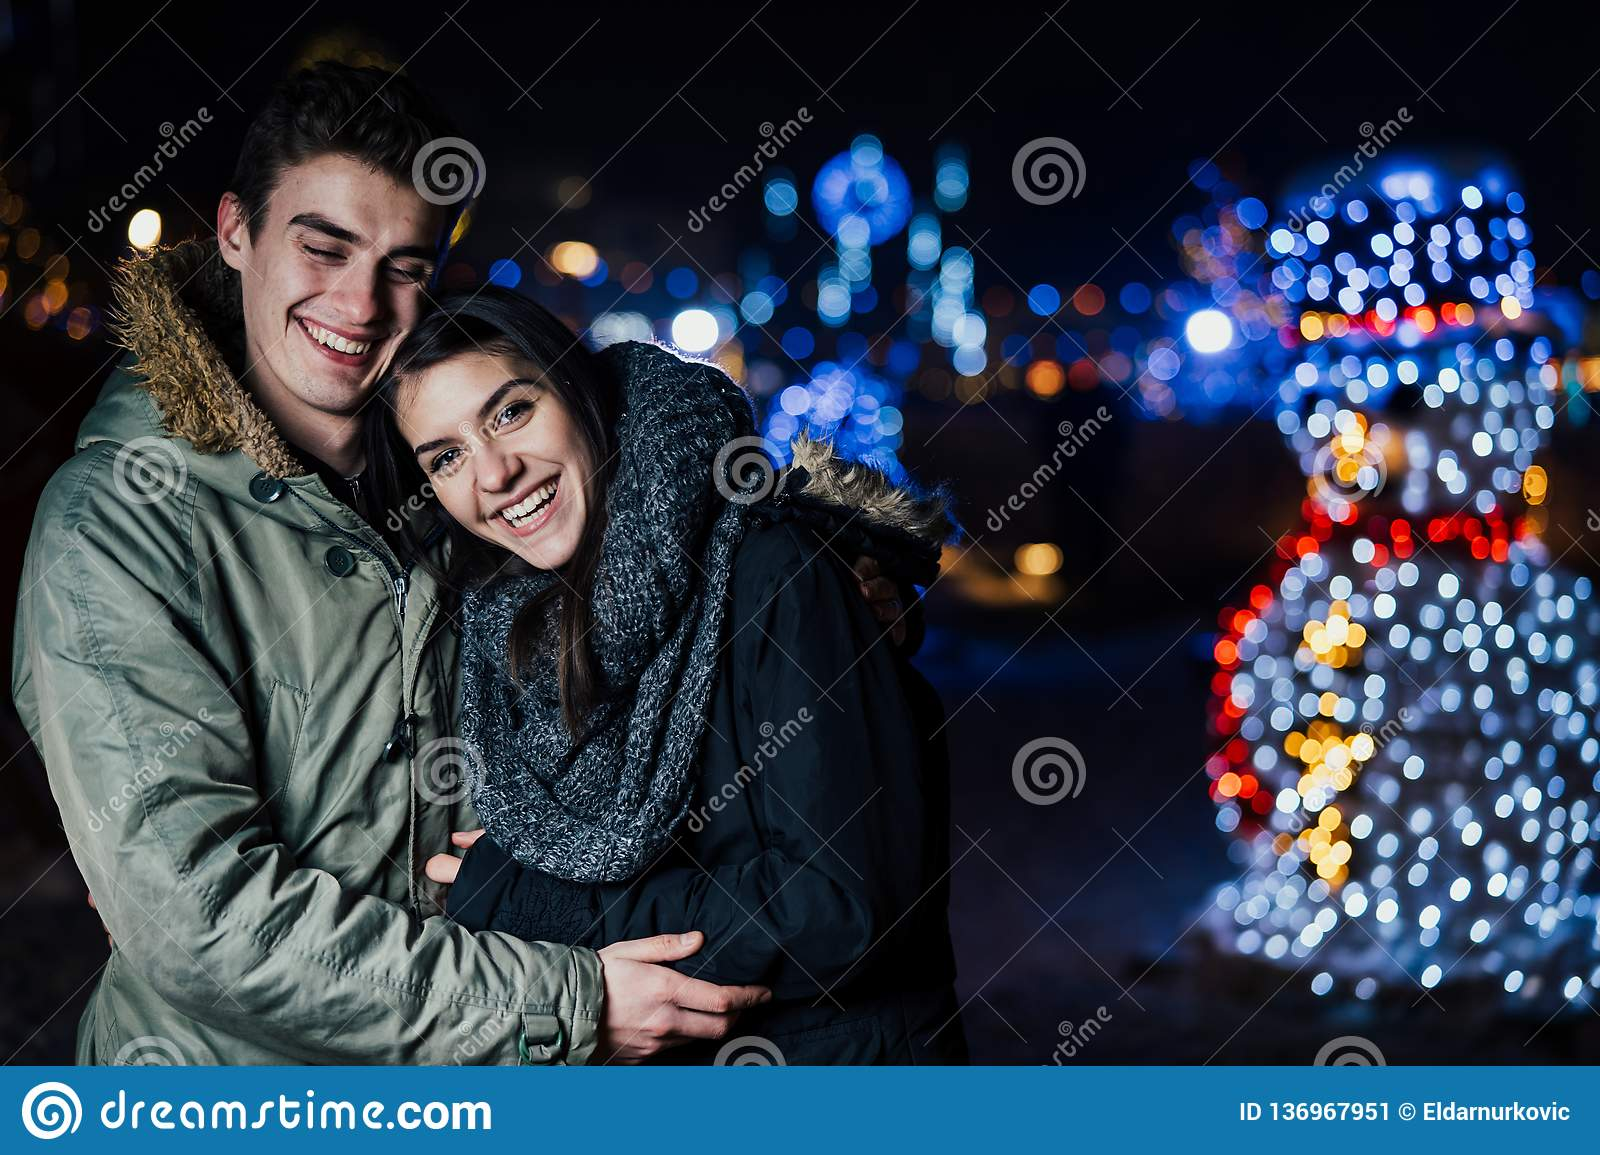 Night portrait of a happy couple smiling enjoying winter and snow aoutdoors.Winter joy.Positive emotions.Happiness